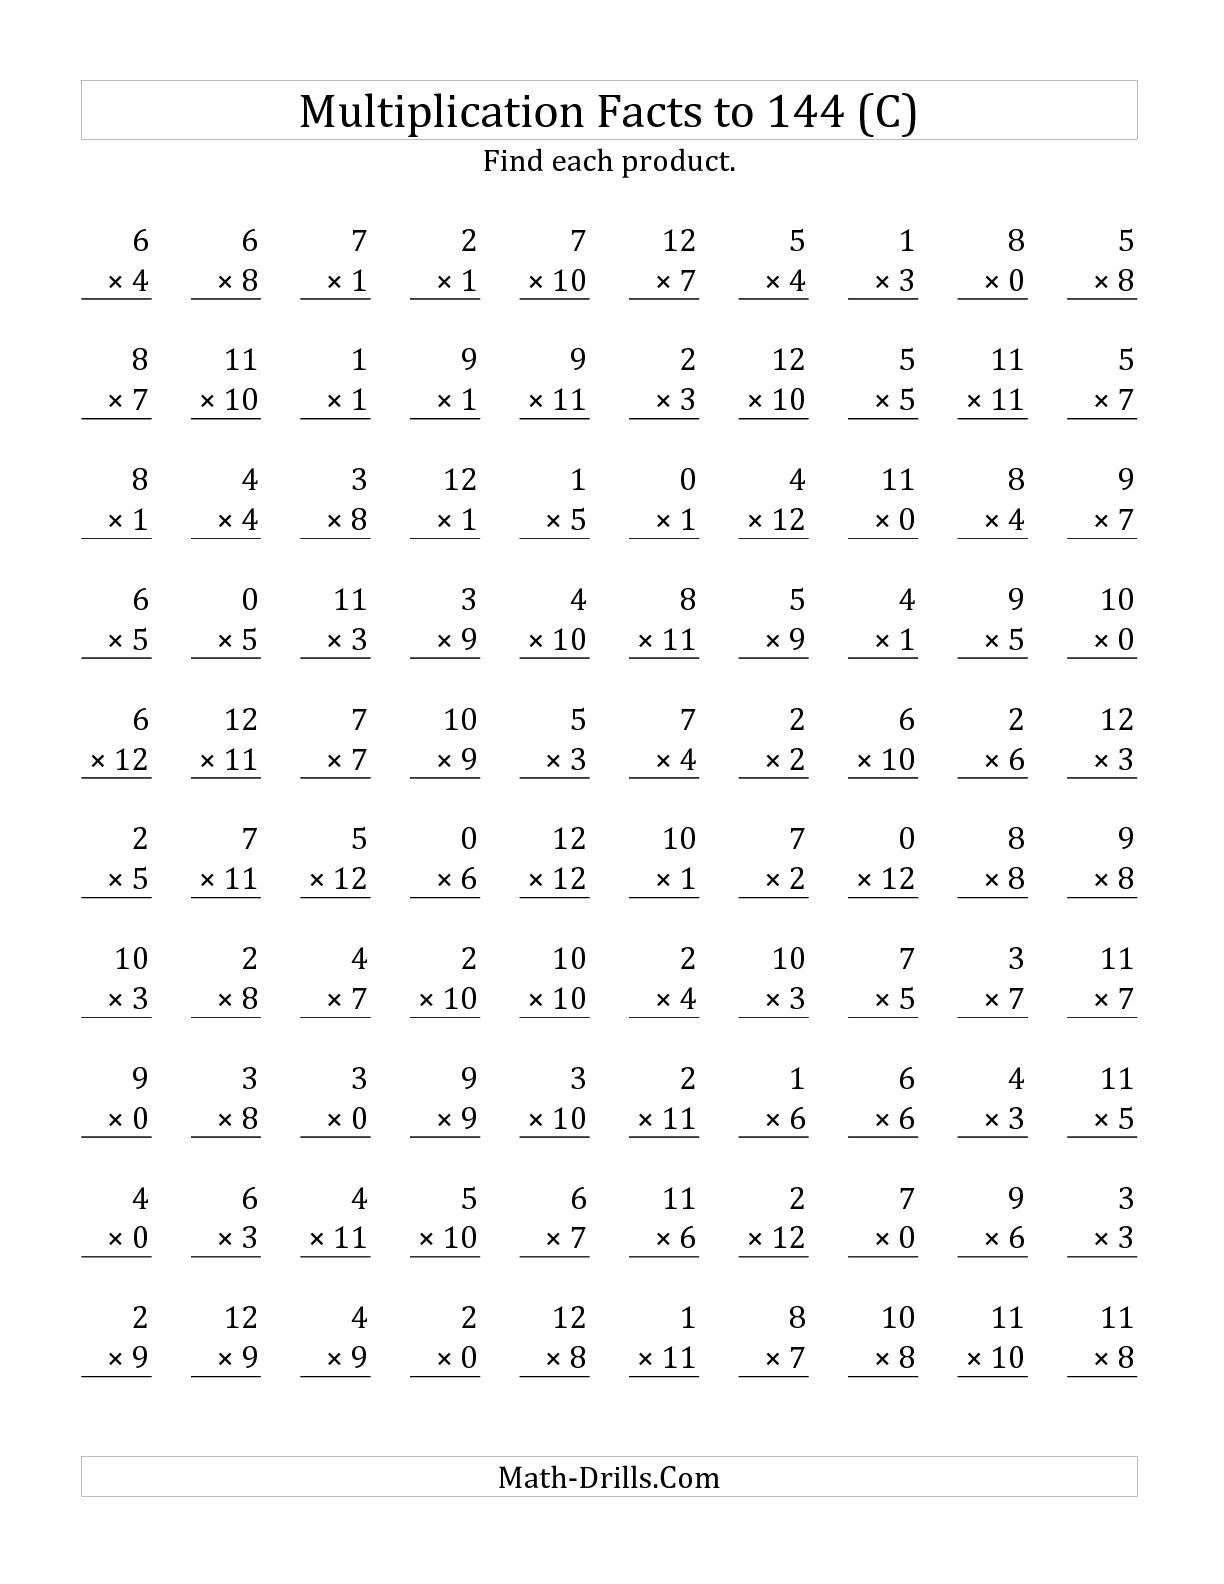 The Multiplication Facts to 144 Including Zeros (C) math worksheet ...